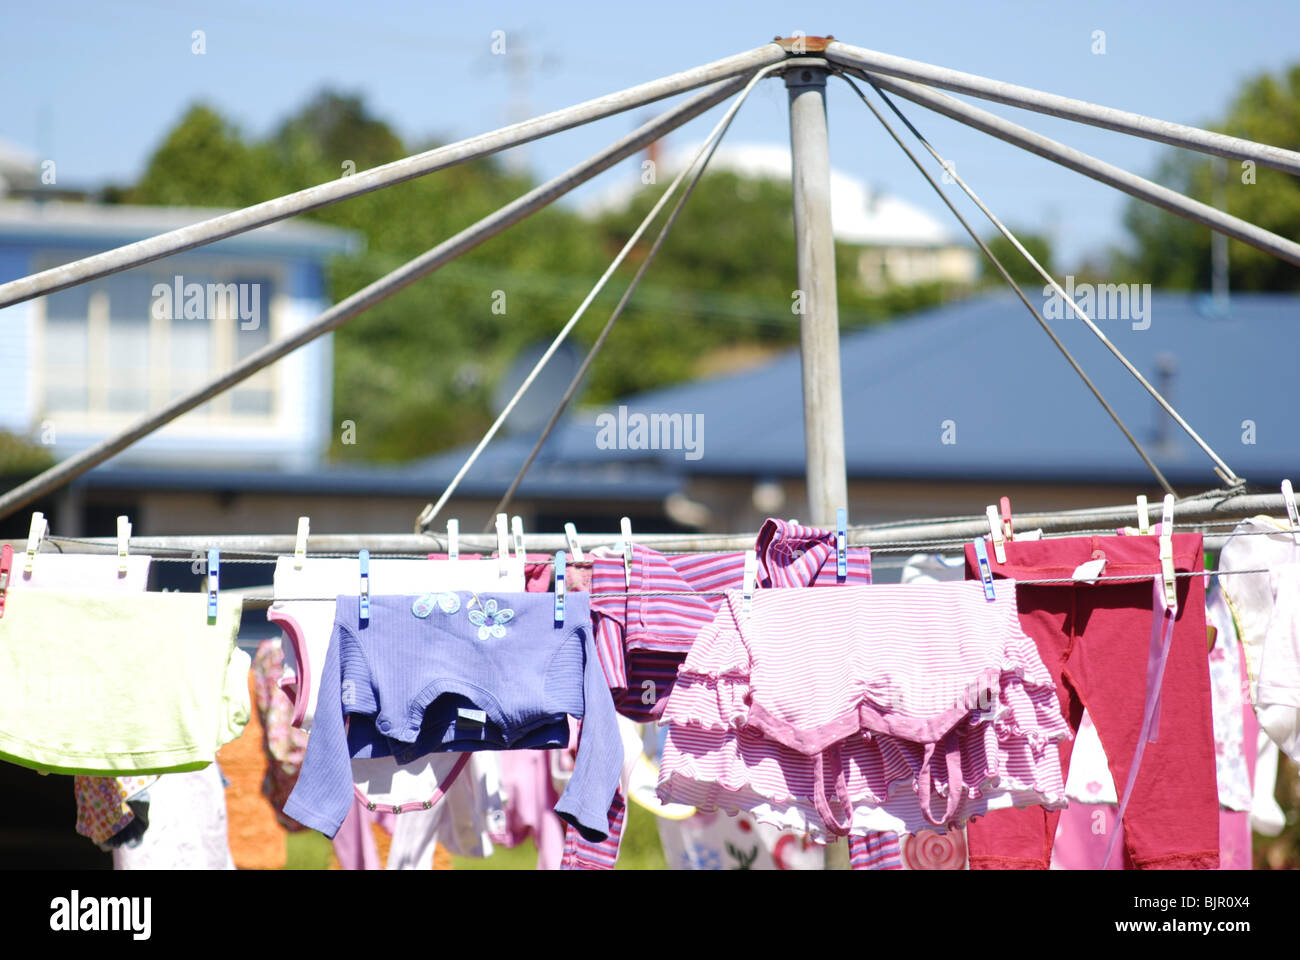 Hills Clothes Hoist Hills Hoist Washing Line With Laundry Drying In Australian